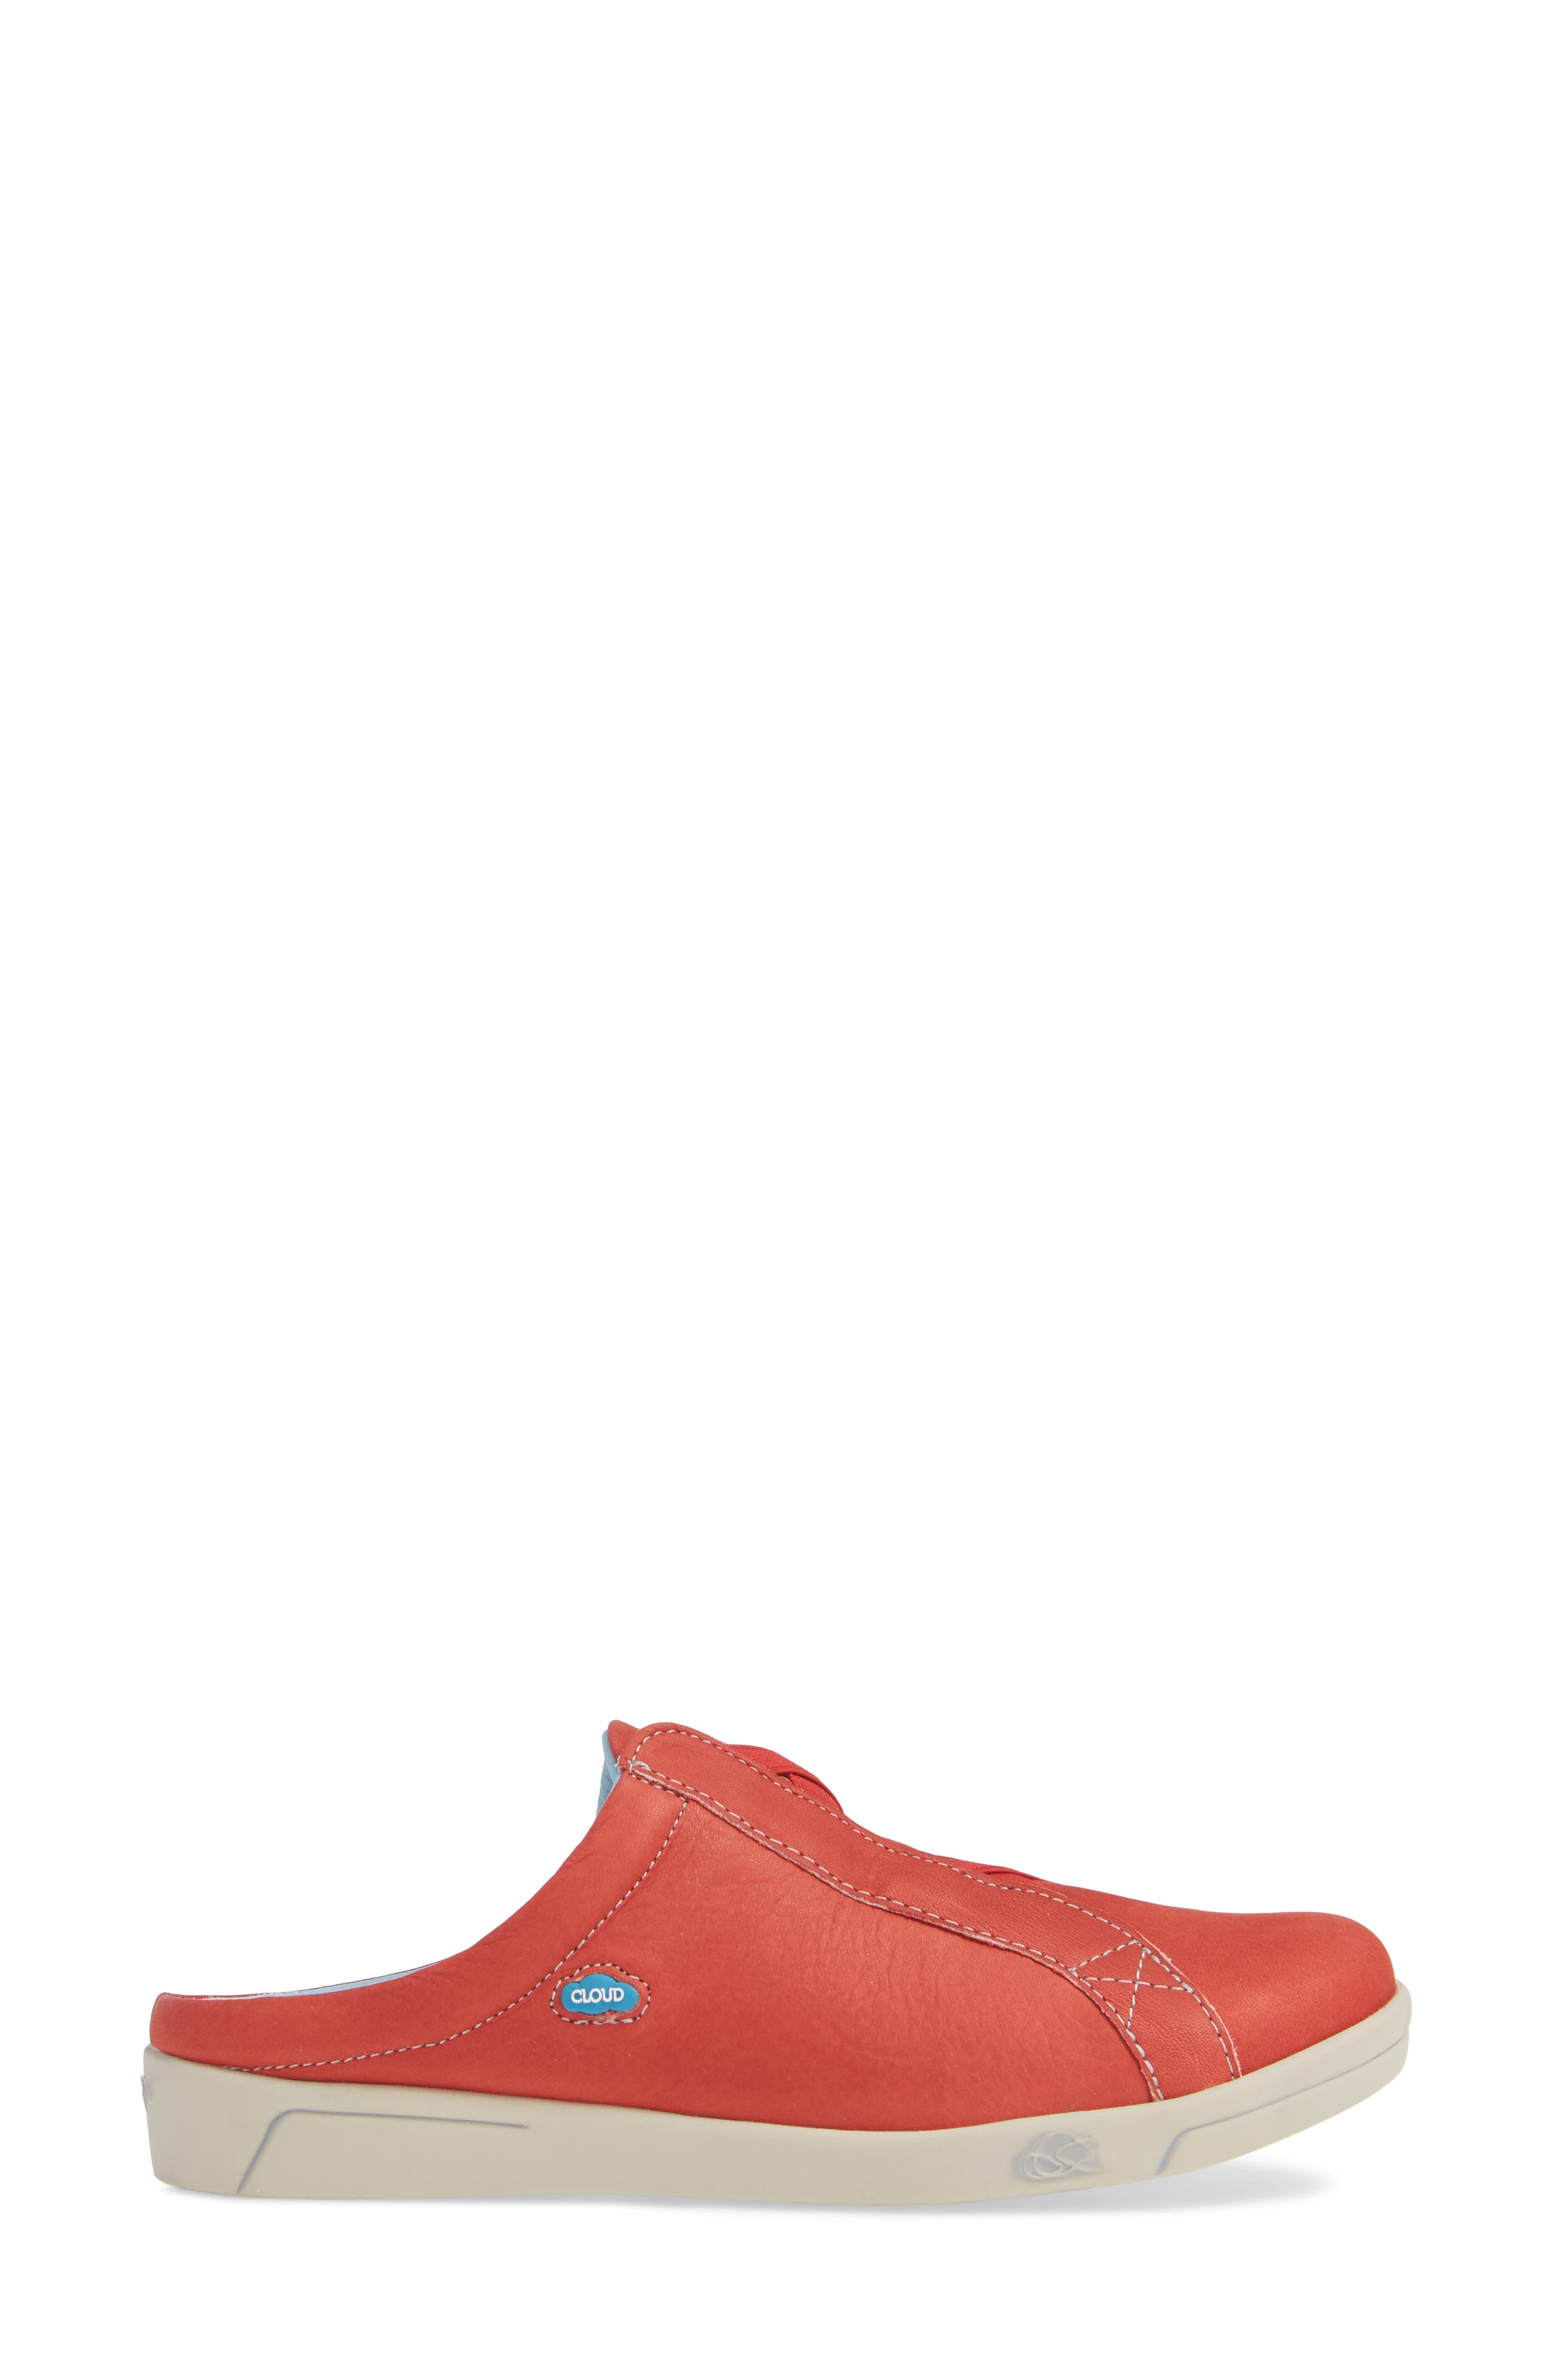 Arizona Sneaker,                             Alternate thumbnail 3, color,                             RED LEATHER